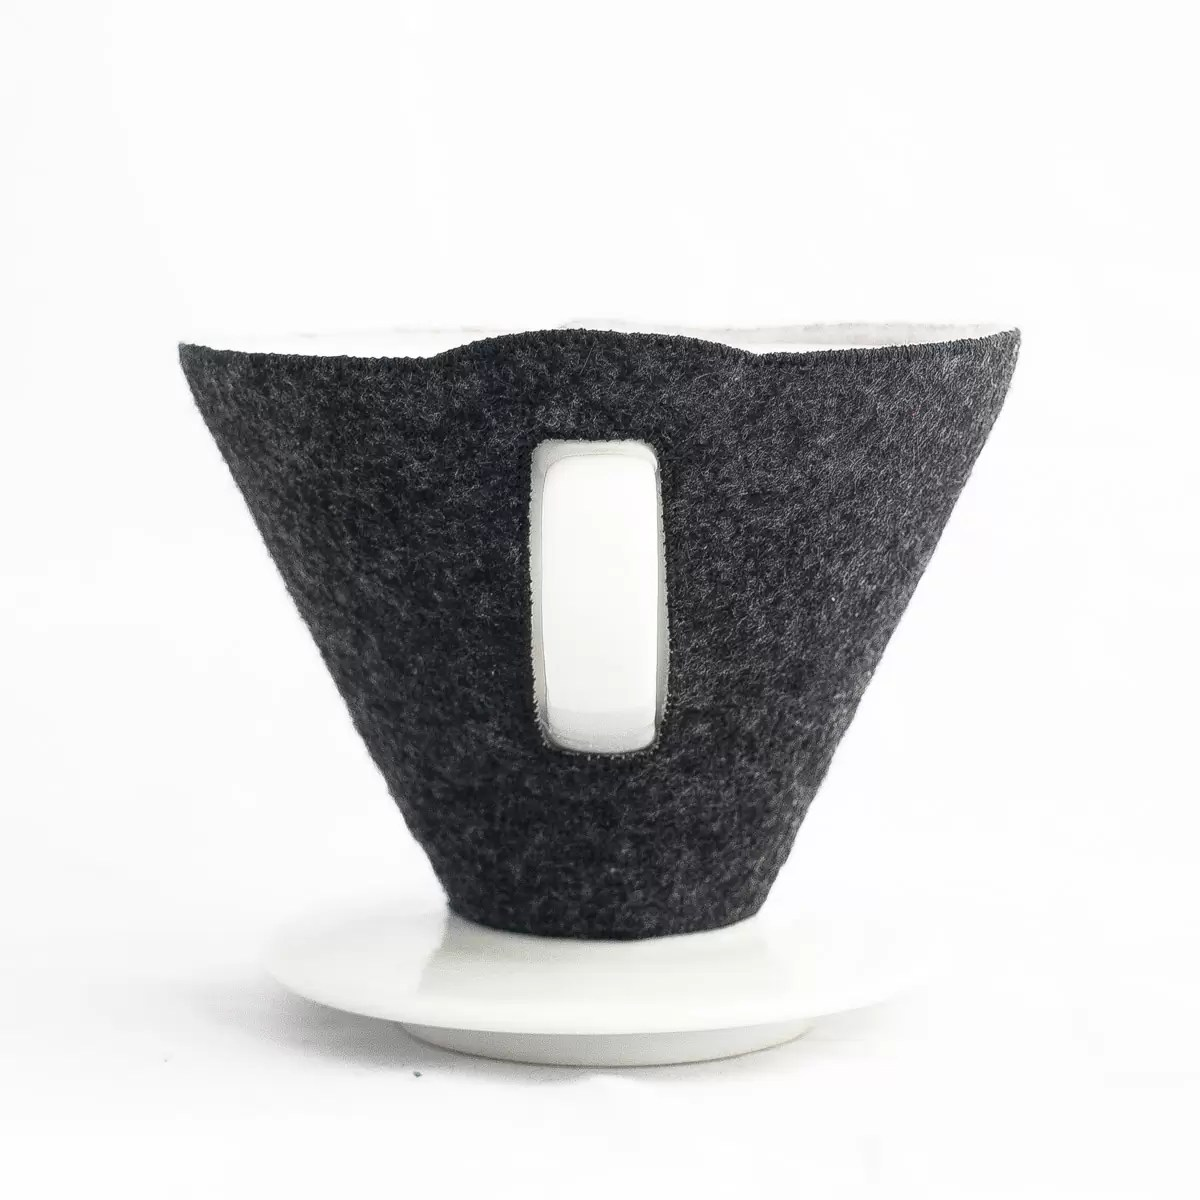 Brewcoat for Hario V60 Ceramic